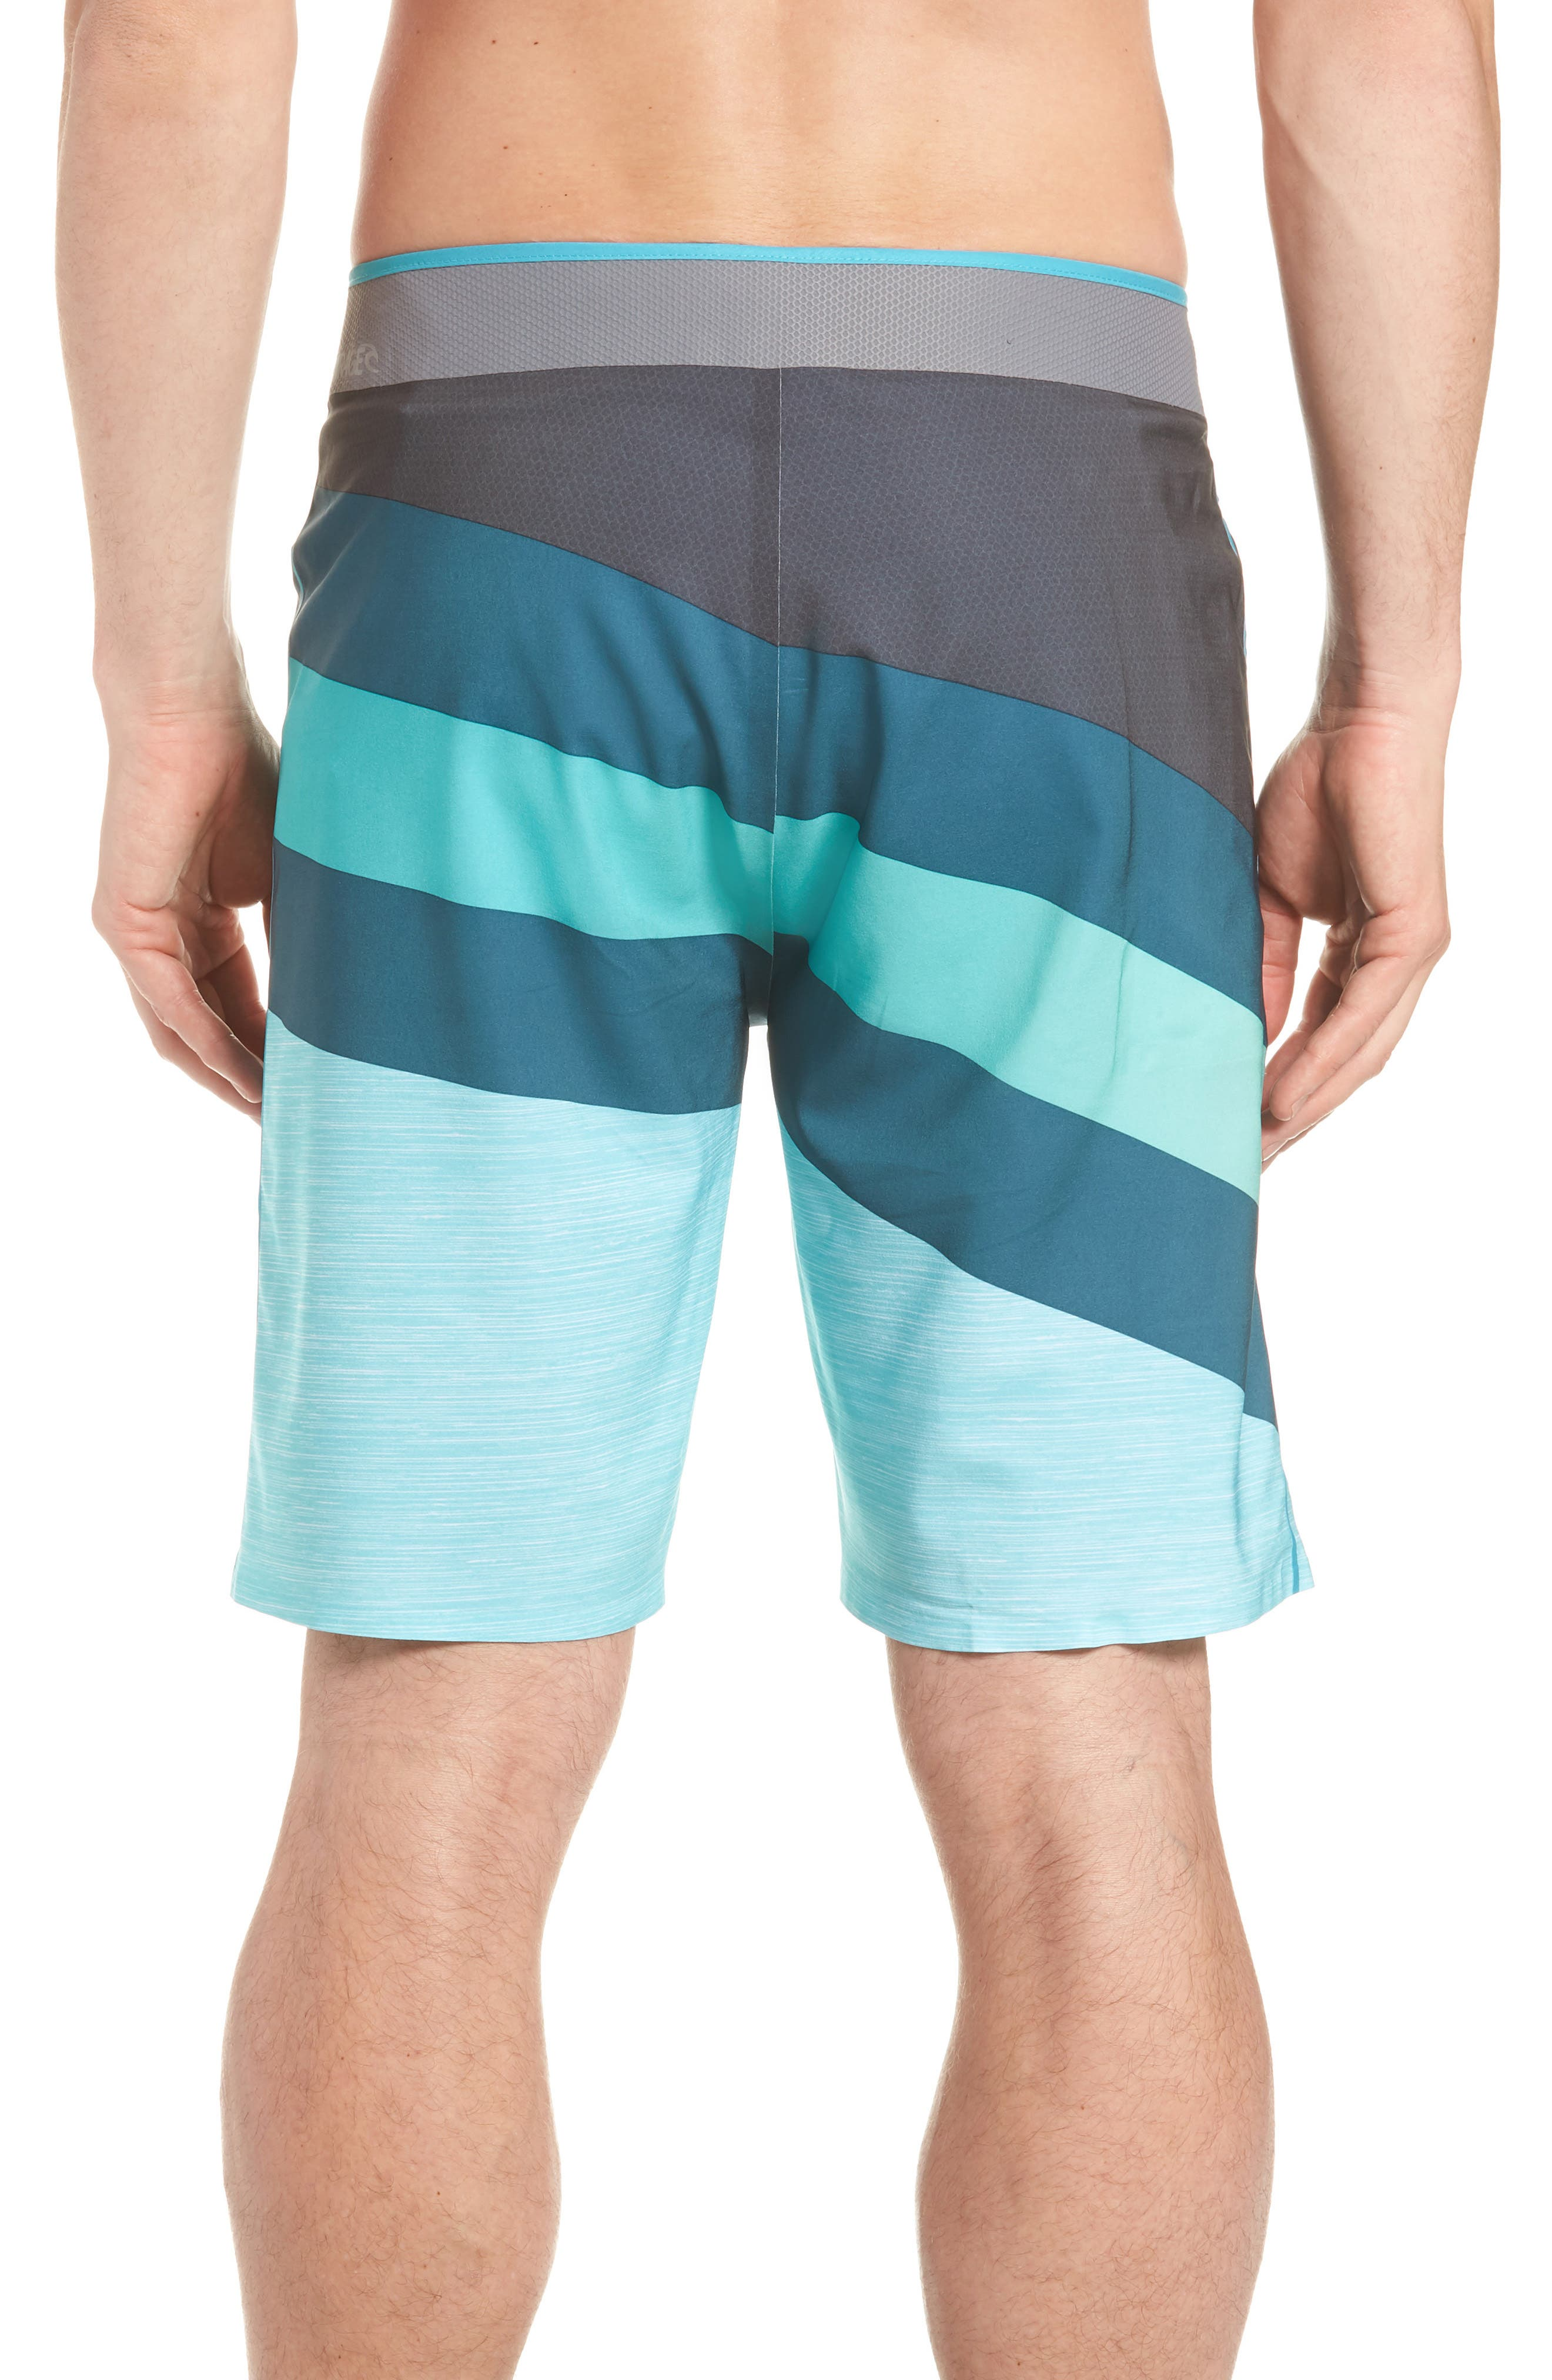 Mirage React Ultimate Board Short,                             Alternate thumbnail 2, color,                             Teal